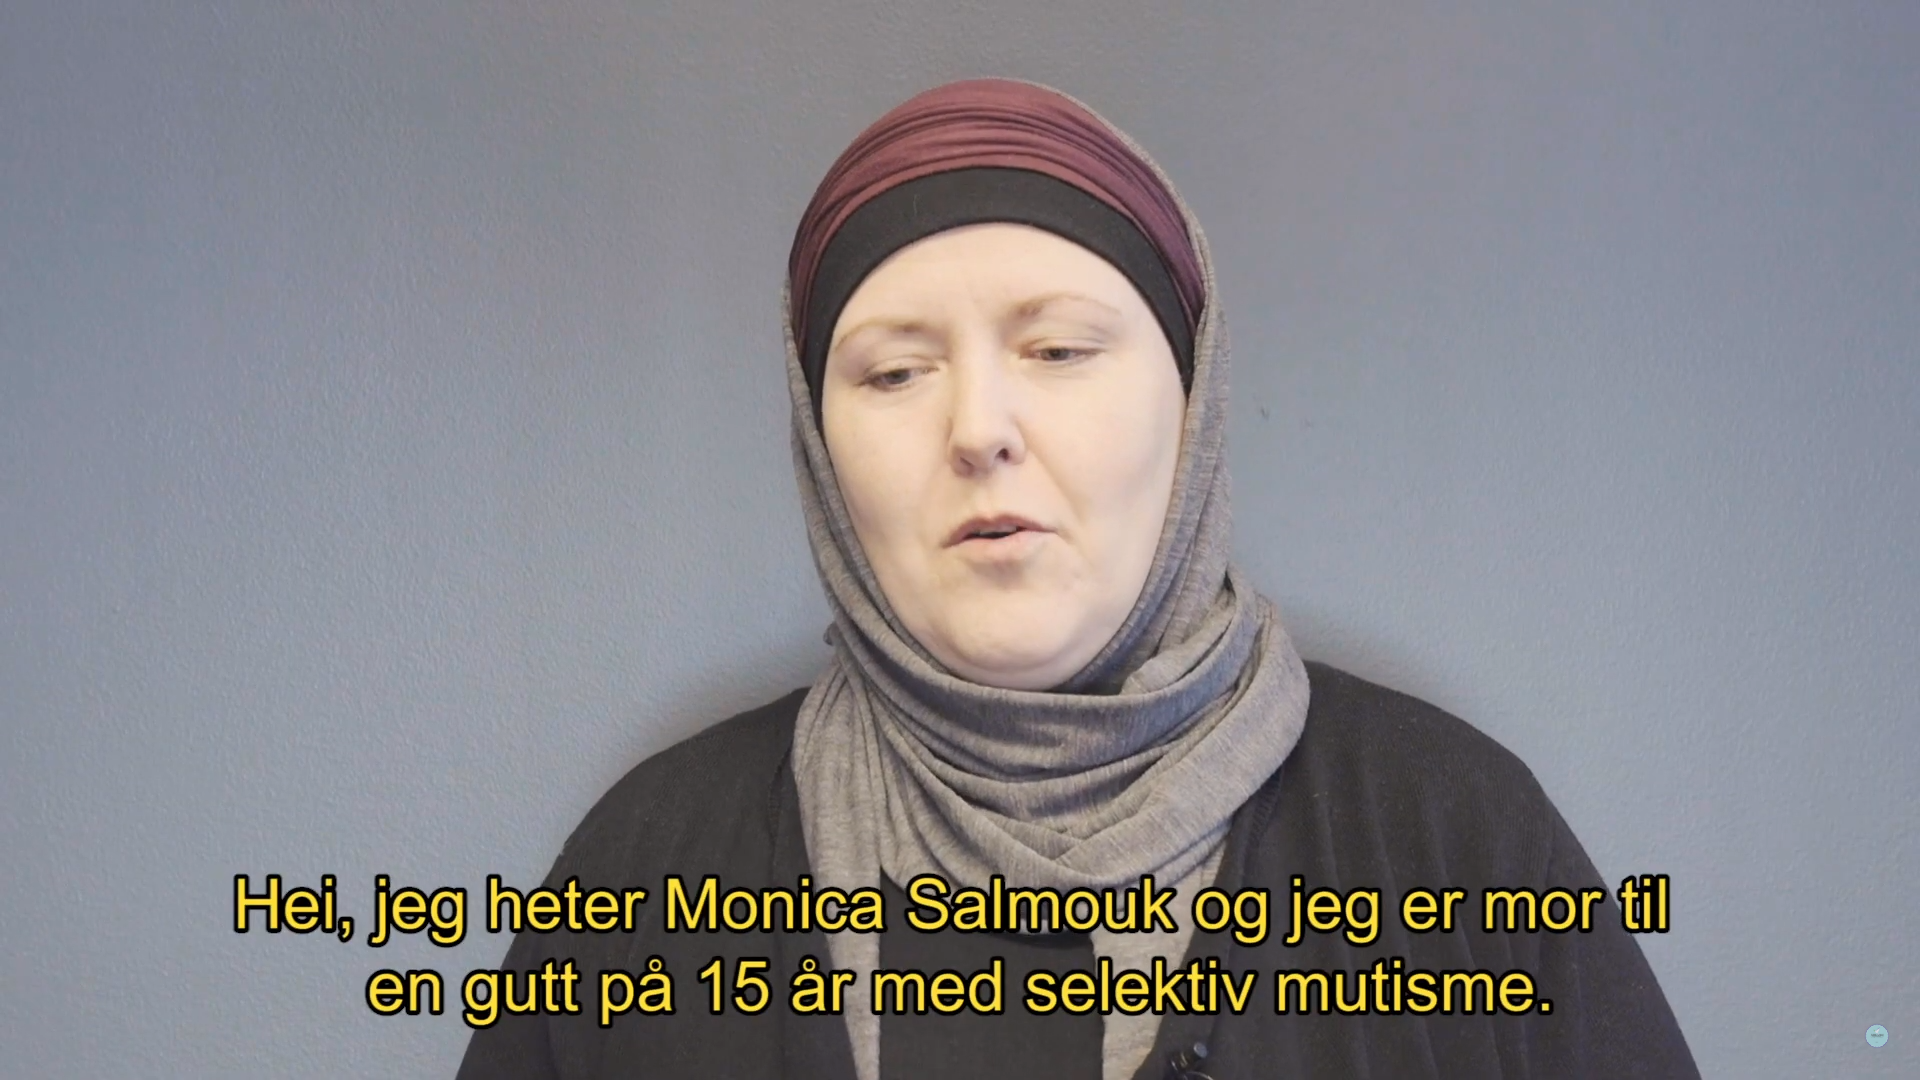 Appeal from Monica Salmouk - mother